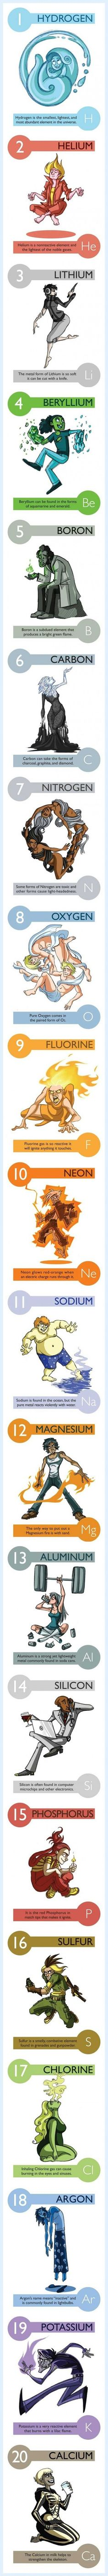 Chemical Elements Described In A Different Way.